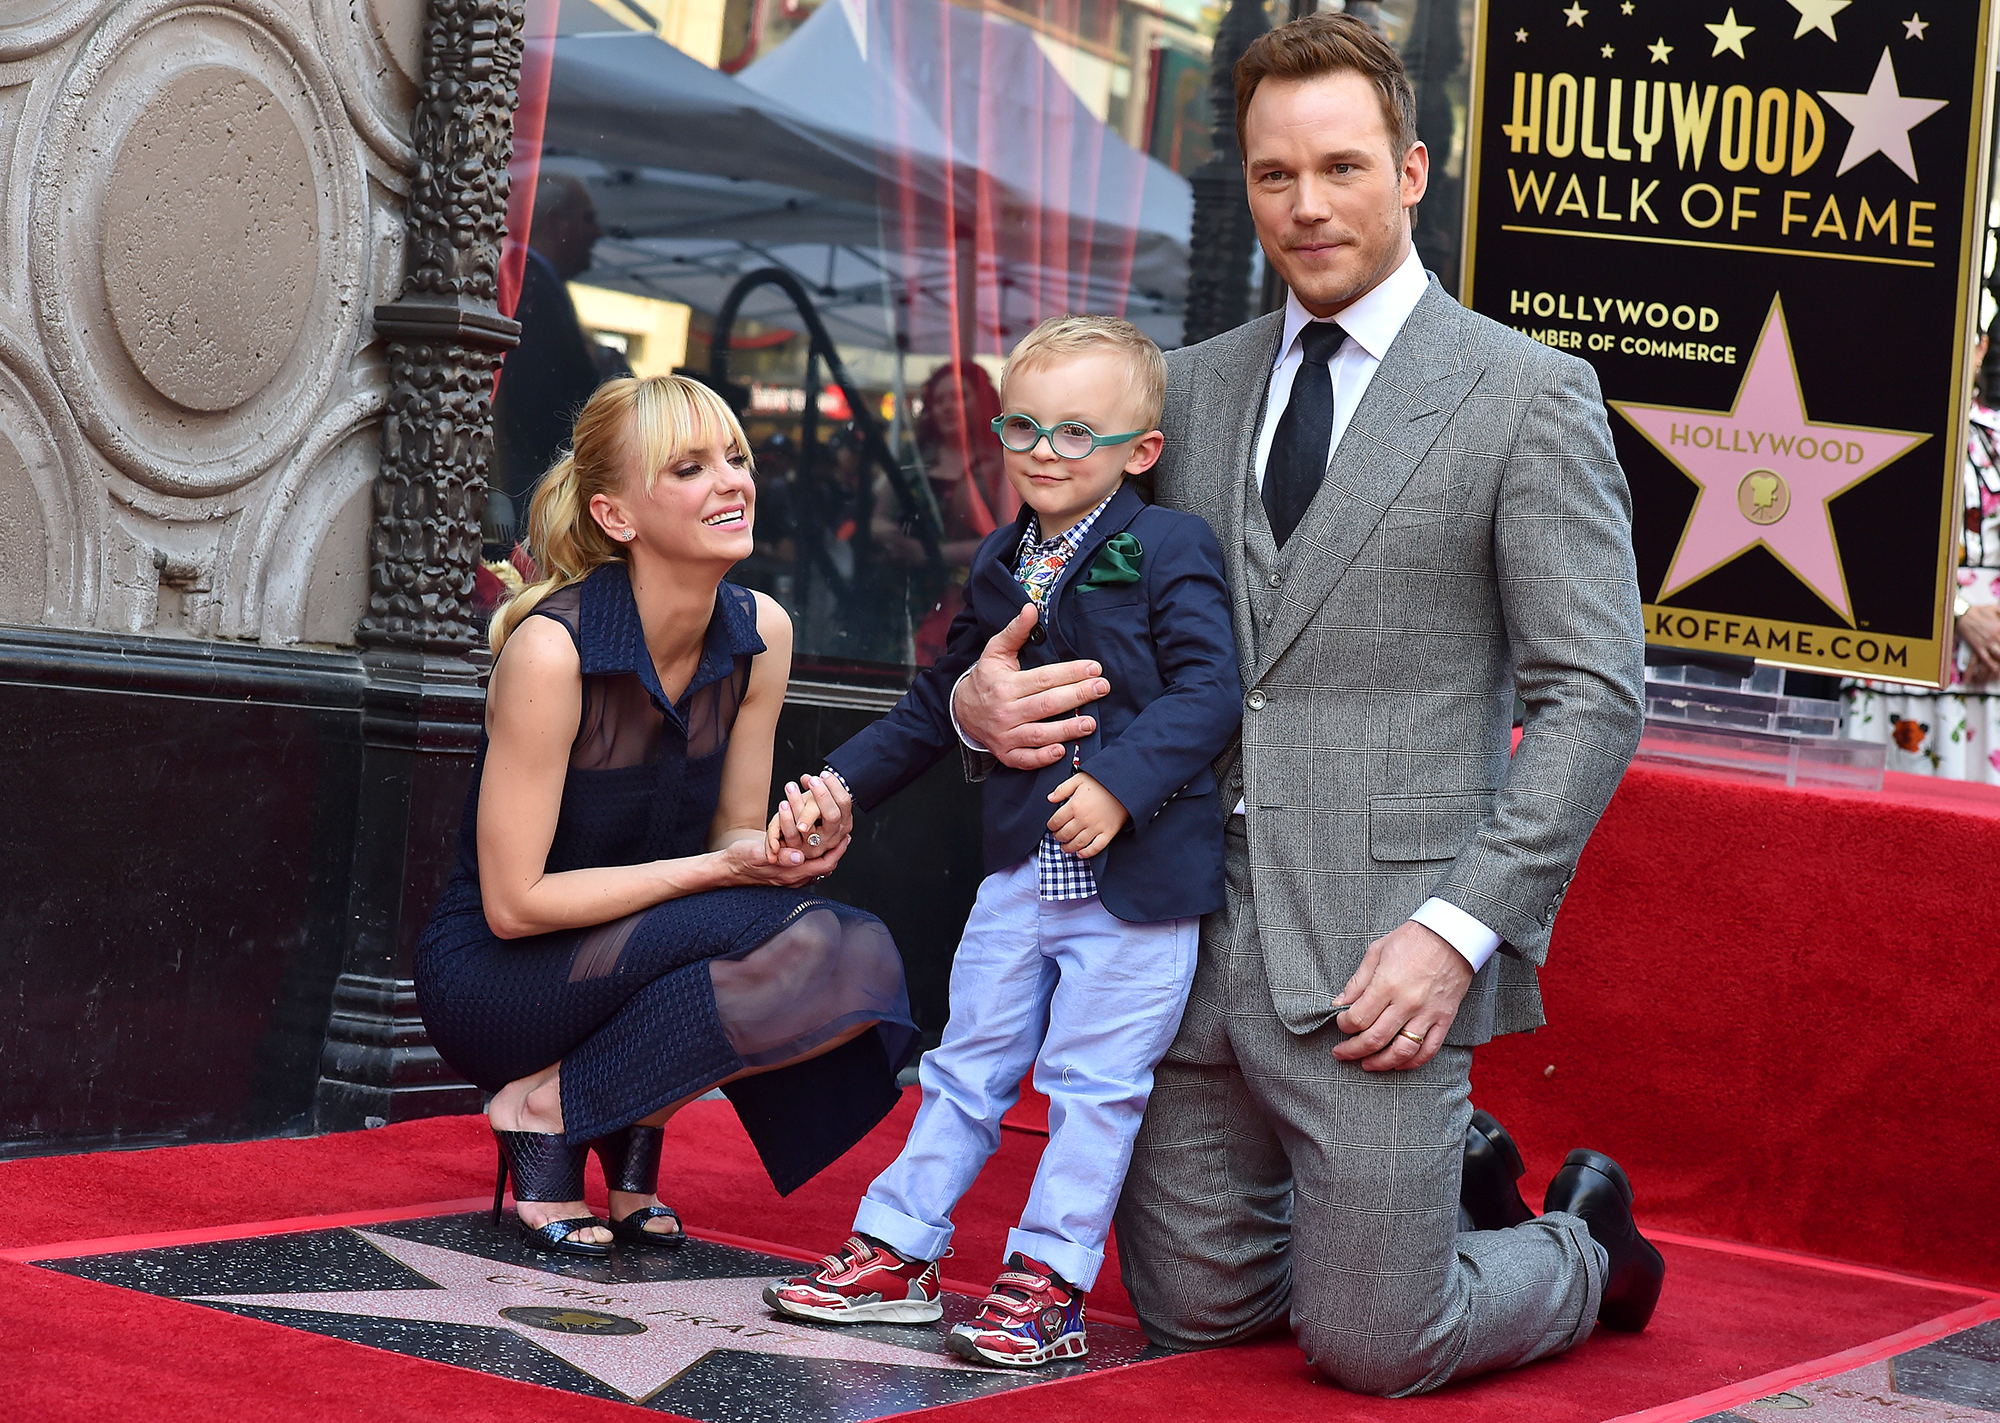 Everything Chris Pratt and Anna Faris Have Said About Coparenting Their Son Jack - HOLLYWOOD, CA – APRIL 21: Actor Chris Pratt, wife Anna Faris and son Jack Pratt attend the ceremony honoring Chris Pratt with a star on the Hollywood Walk of Fame on April 21, 2017 in Hollywood, California. (Photo by Axelle/Bauer-Griffin/FilmMagic)